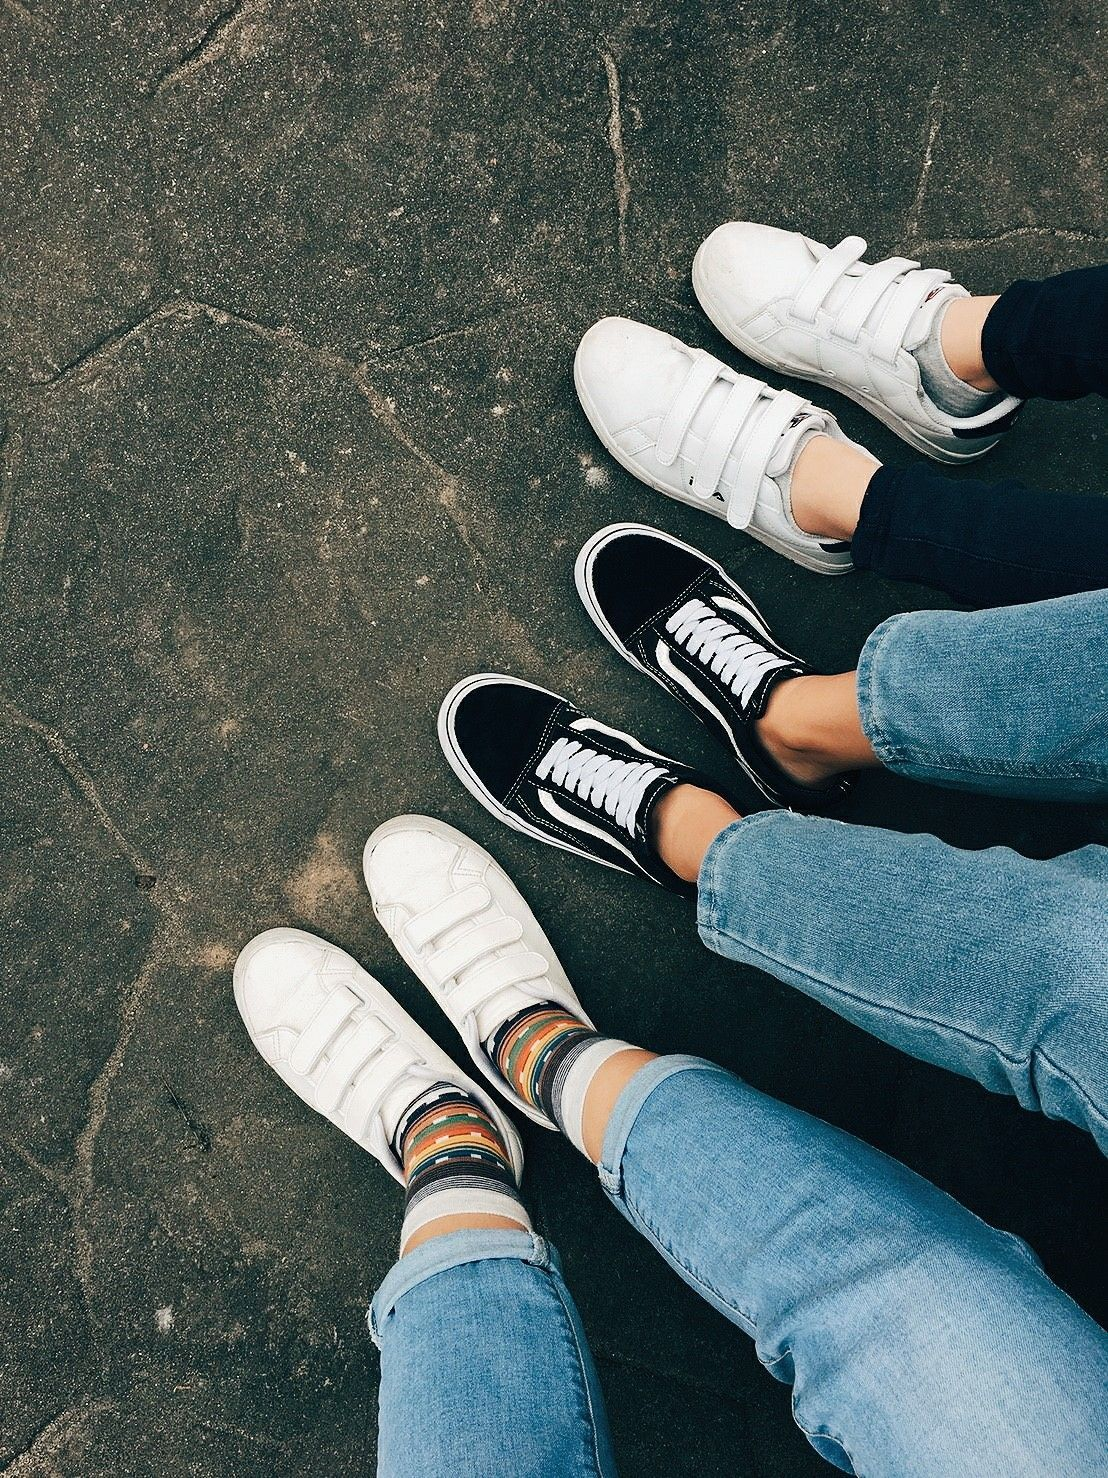 Vsco Vans Wallpapers Top Free Vsco Vans Backgrounds